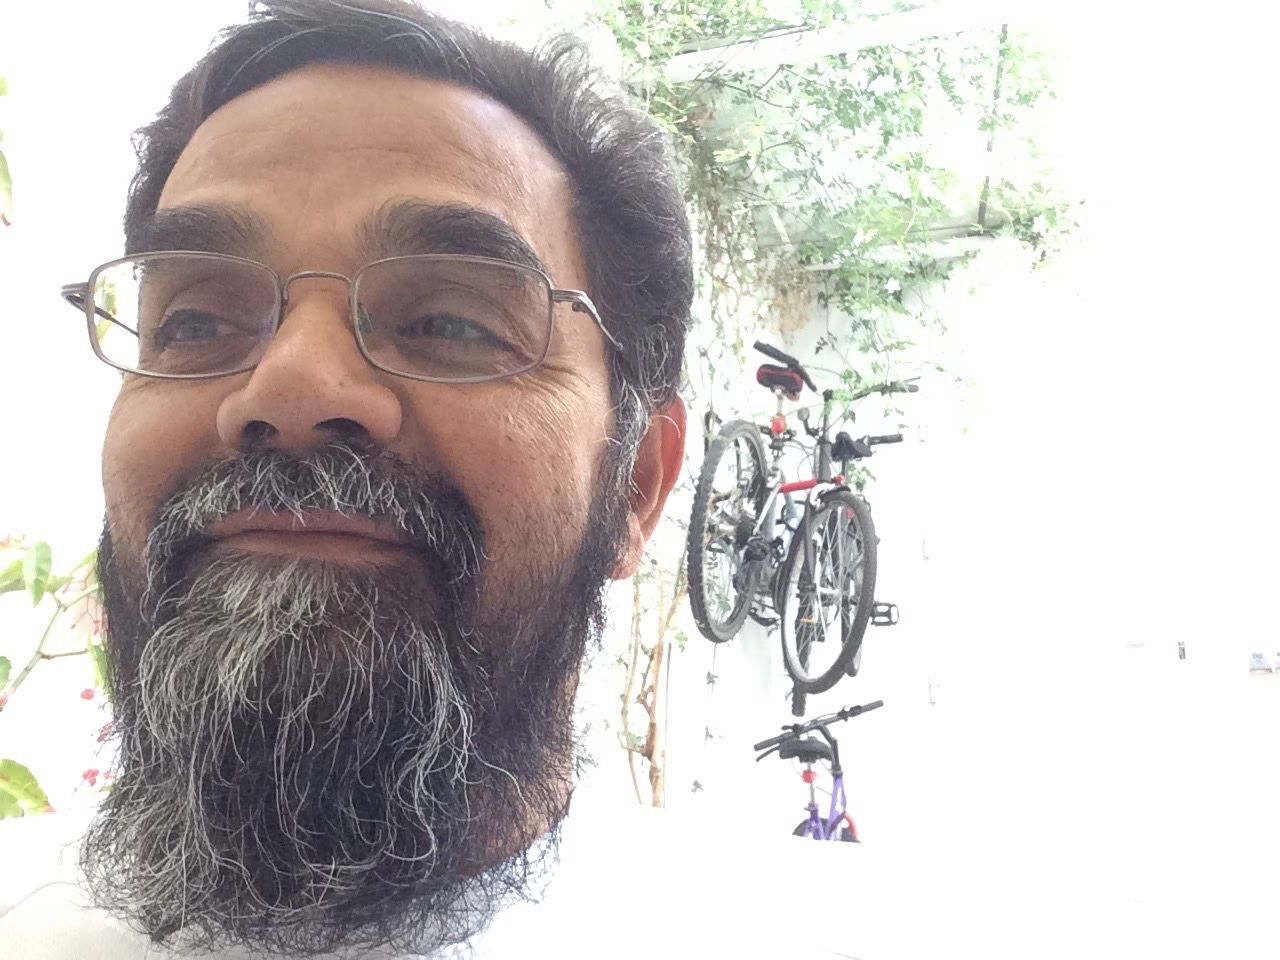 Gopi: An open letter to my cycle thief